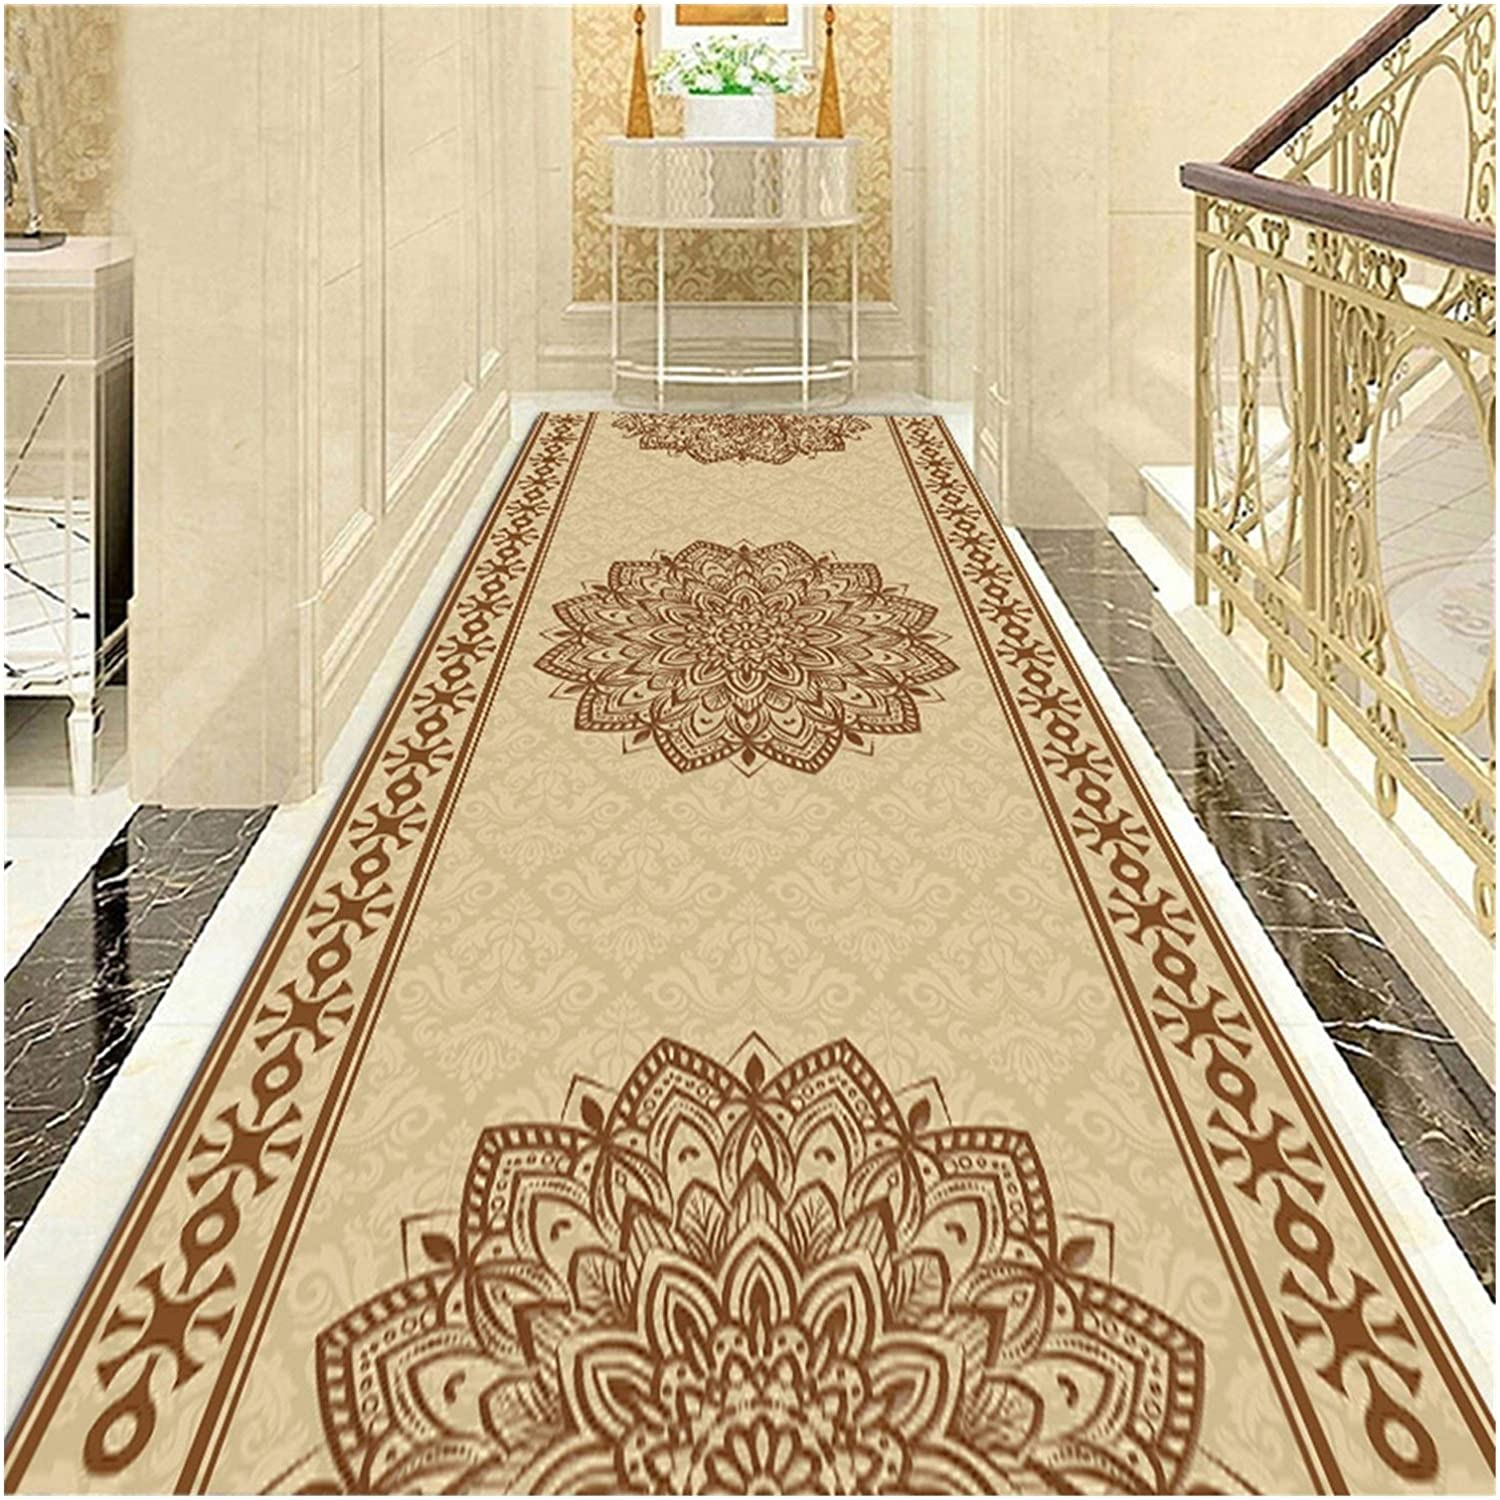 LXHONG Protective Corridor Carpets, Durable Foyer Floor Mats, Noise Reduction Walkway Blanket for Balcony Study Blended, 44 Sizes (Color : Multi-Colored, Size : 120x450cm)